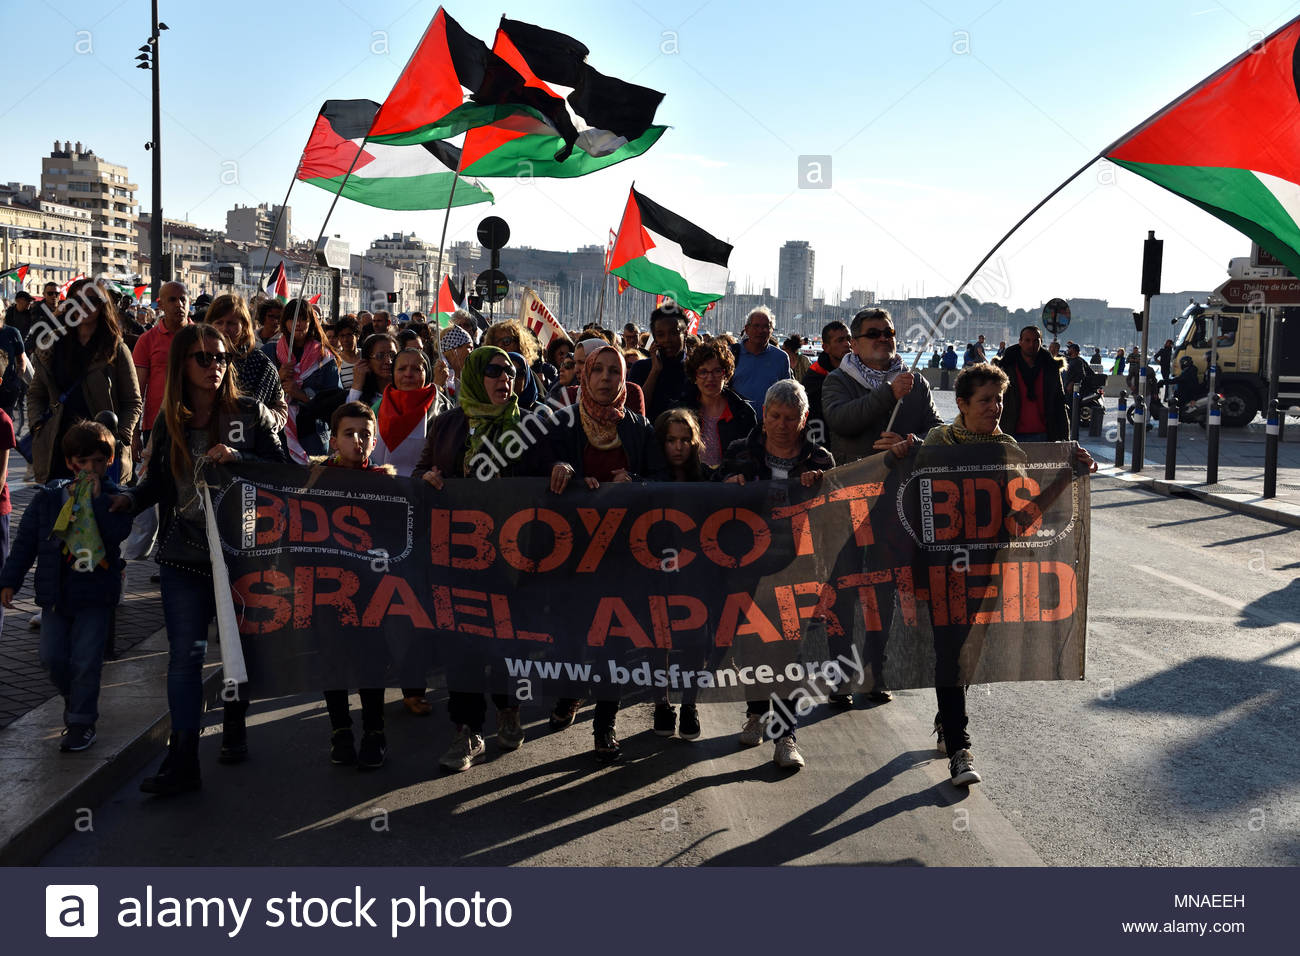 Marseille France 15 May 2018 Protesters hold a banner reading 'Boycott Israel Apartheid' and wave Palestinian flags as they take to the streets of Marseille, France on May 15, 2018 during a protest against the killing, the day before, of 59 Palestinians in clashes and protests, on the same day as the United States formally moved its embassy in Israel to Jerusalem from Tel Aviv in defiance of international outrage. (c) copyright CrowdSpark/Gerard Bottino - Stock Image